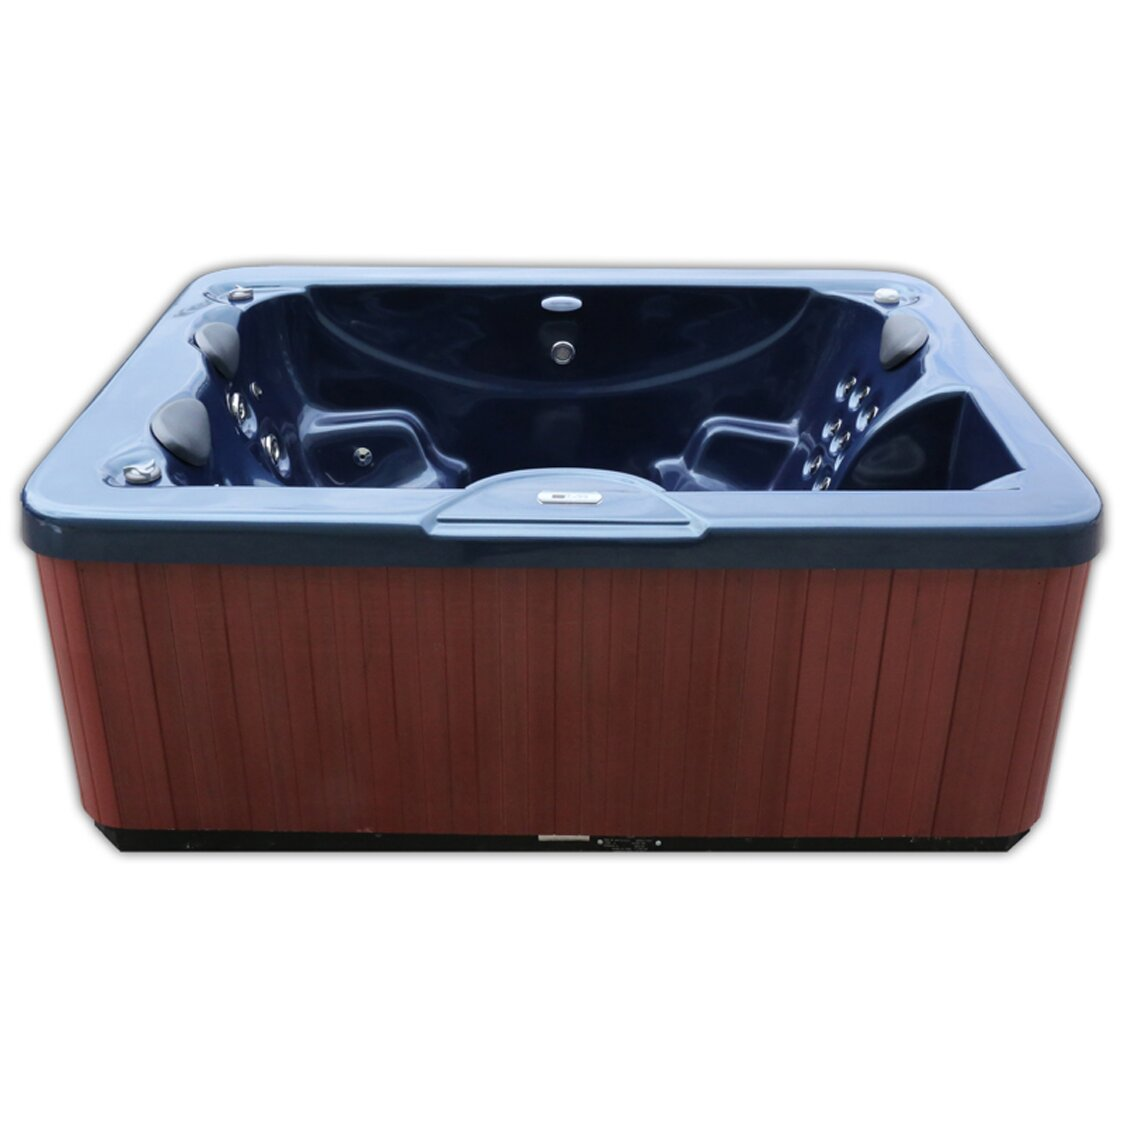 Home And Garden Spas 3 Person 31 Jet Hot Tub With